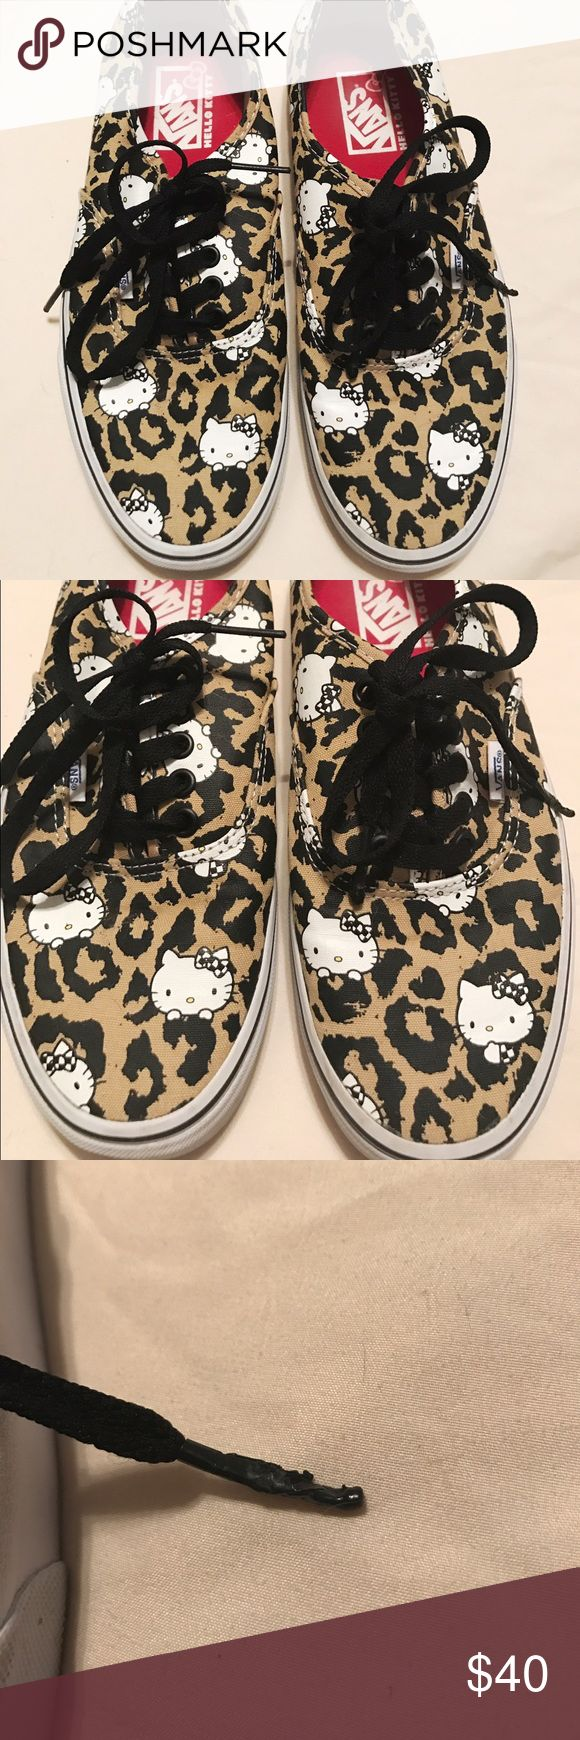 HELLO KITTY VANS NWOT Hello Kitty Vans in perfect condition, the only minor flaw is the end of the lace, which is pictured. Size 9.5 Vans Shoes